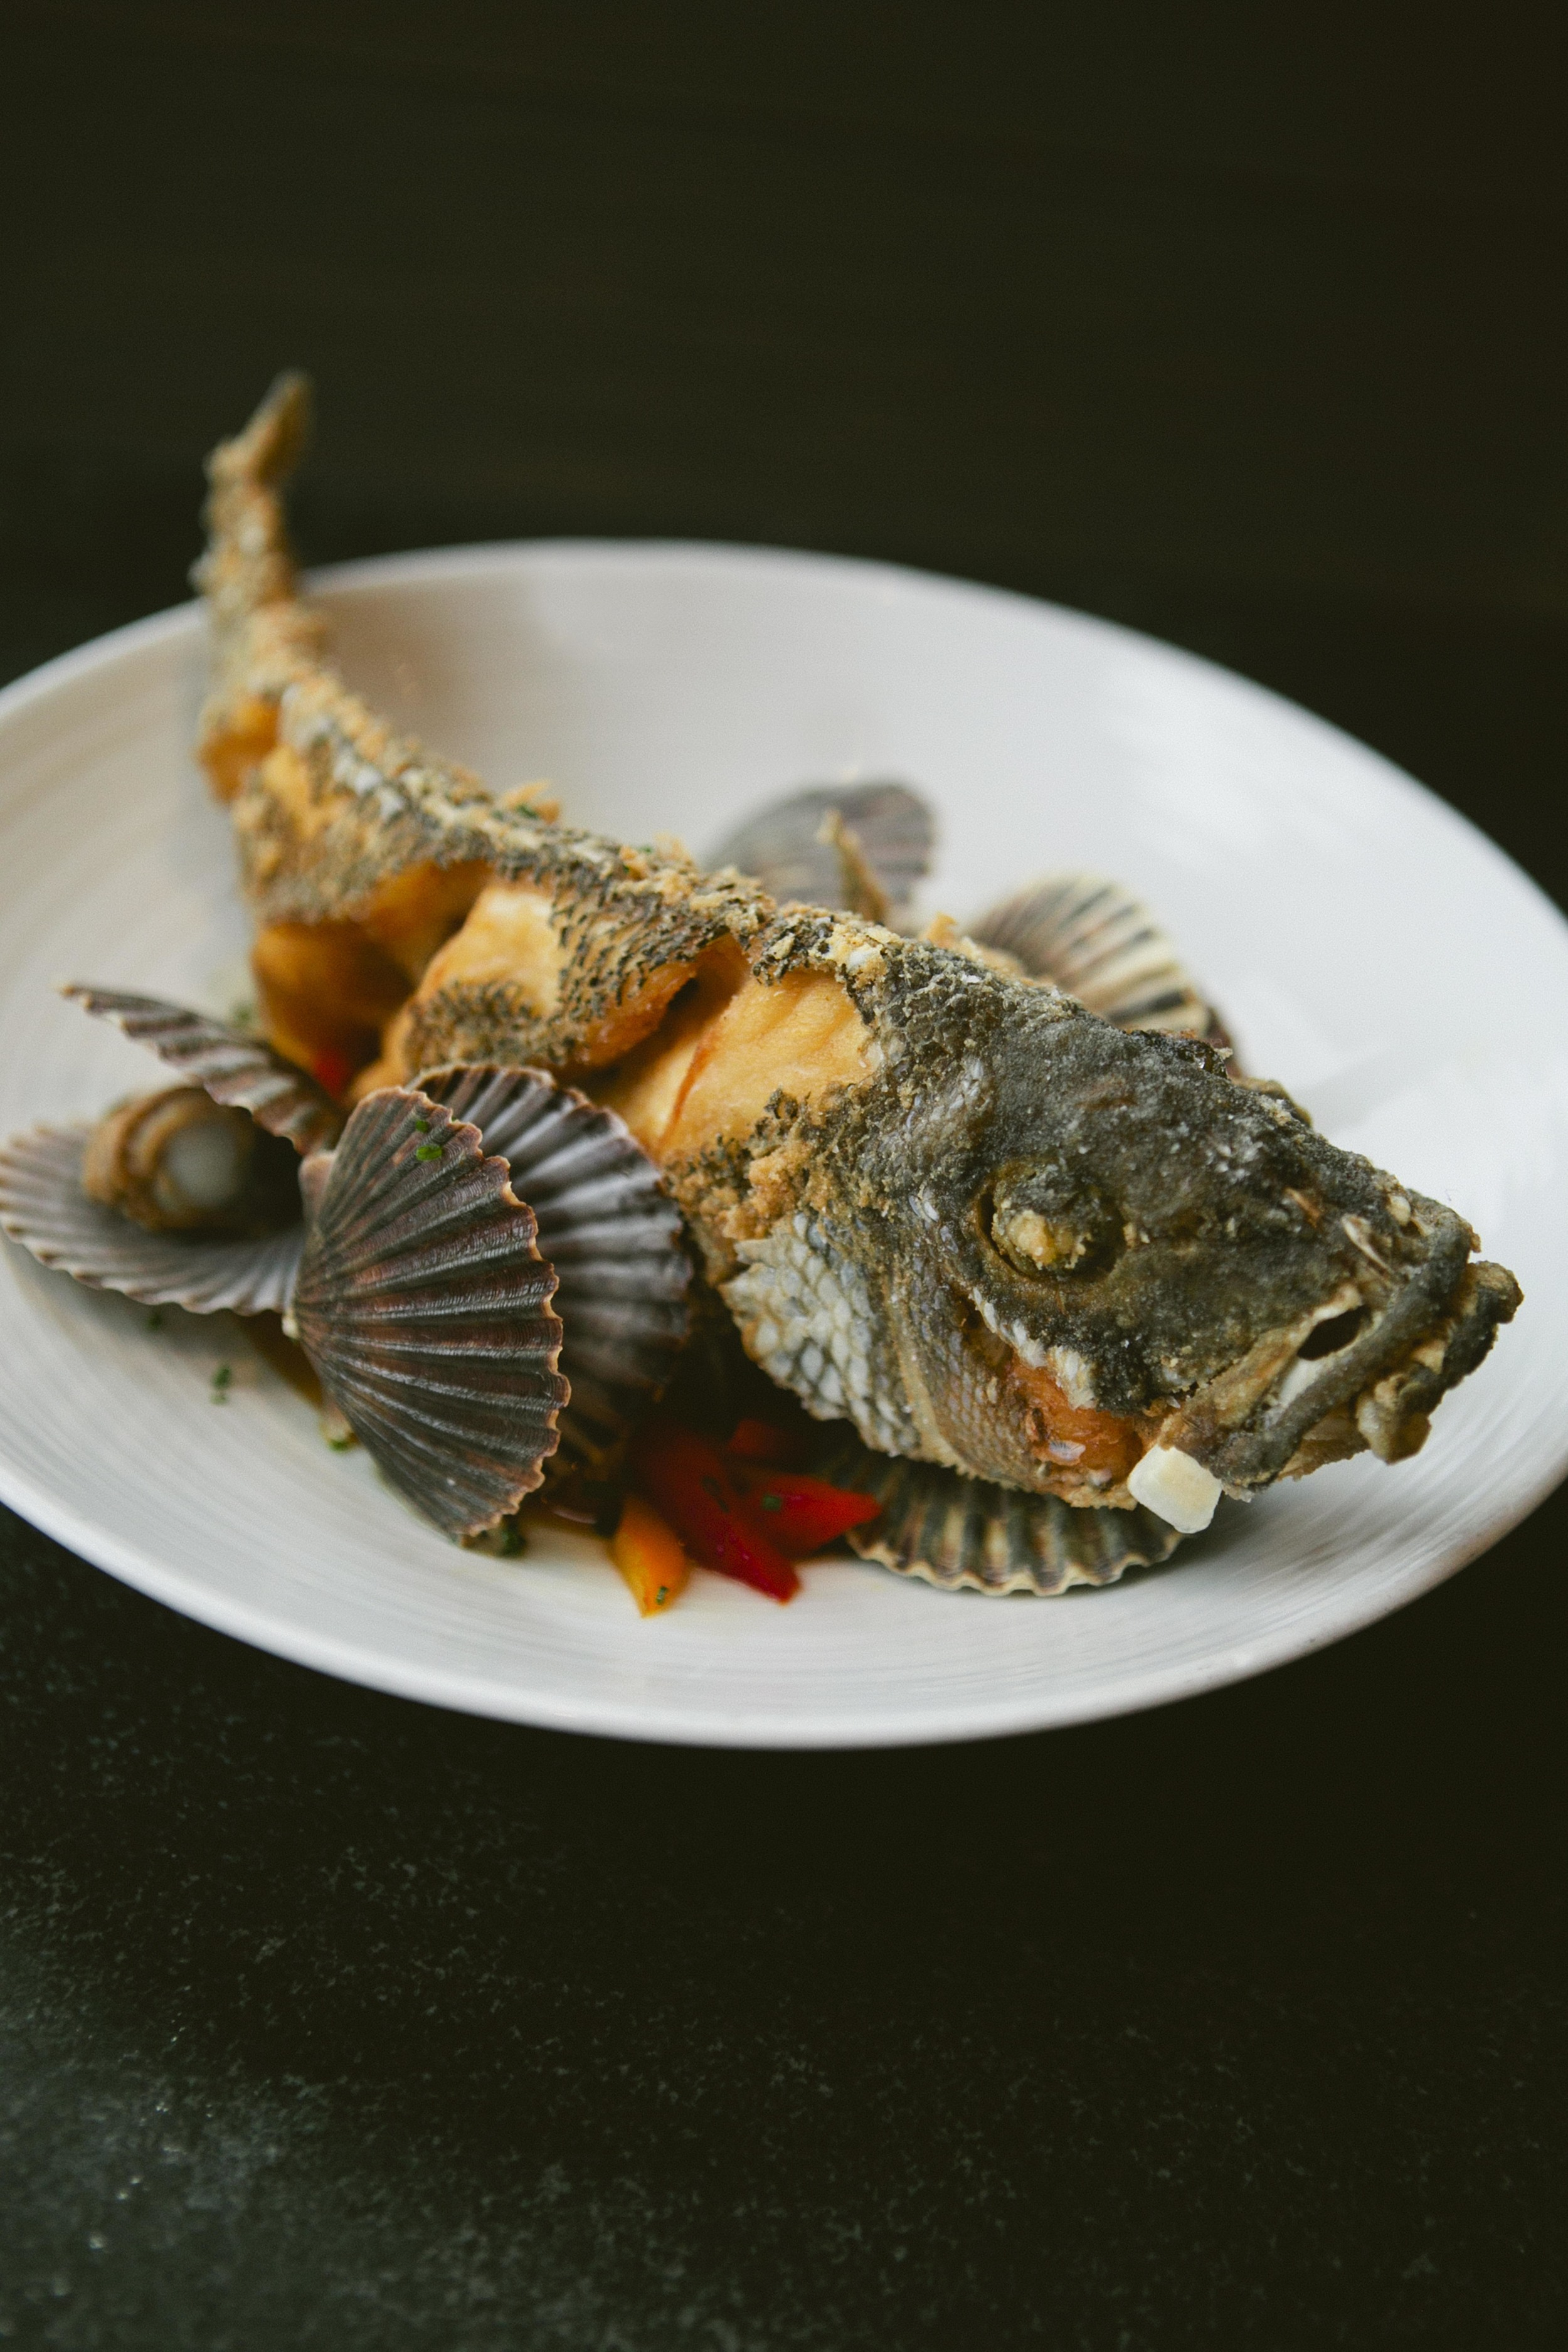 Roasted Whole Sea Bass from Jeremy Sewall of Island Creek Oyster Bar (Photograph by Brian Samuels)